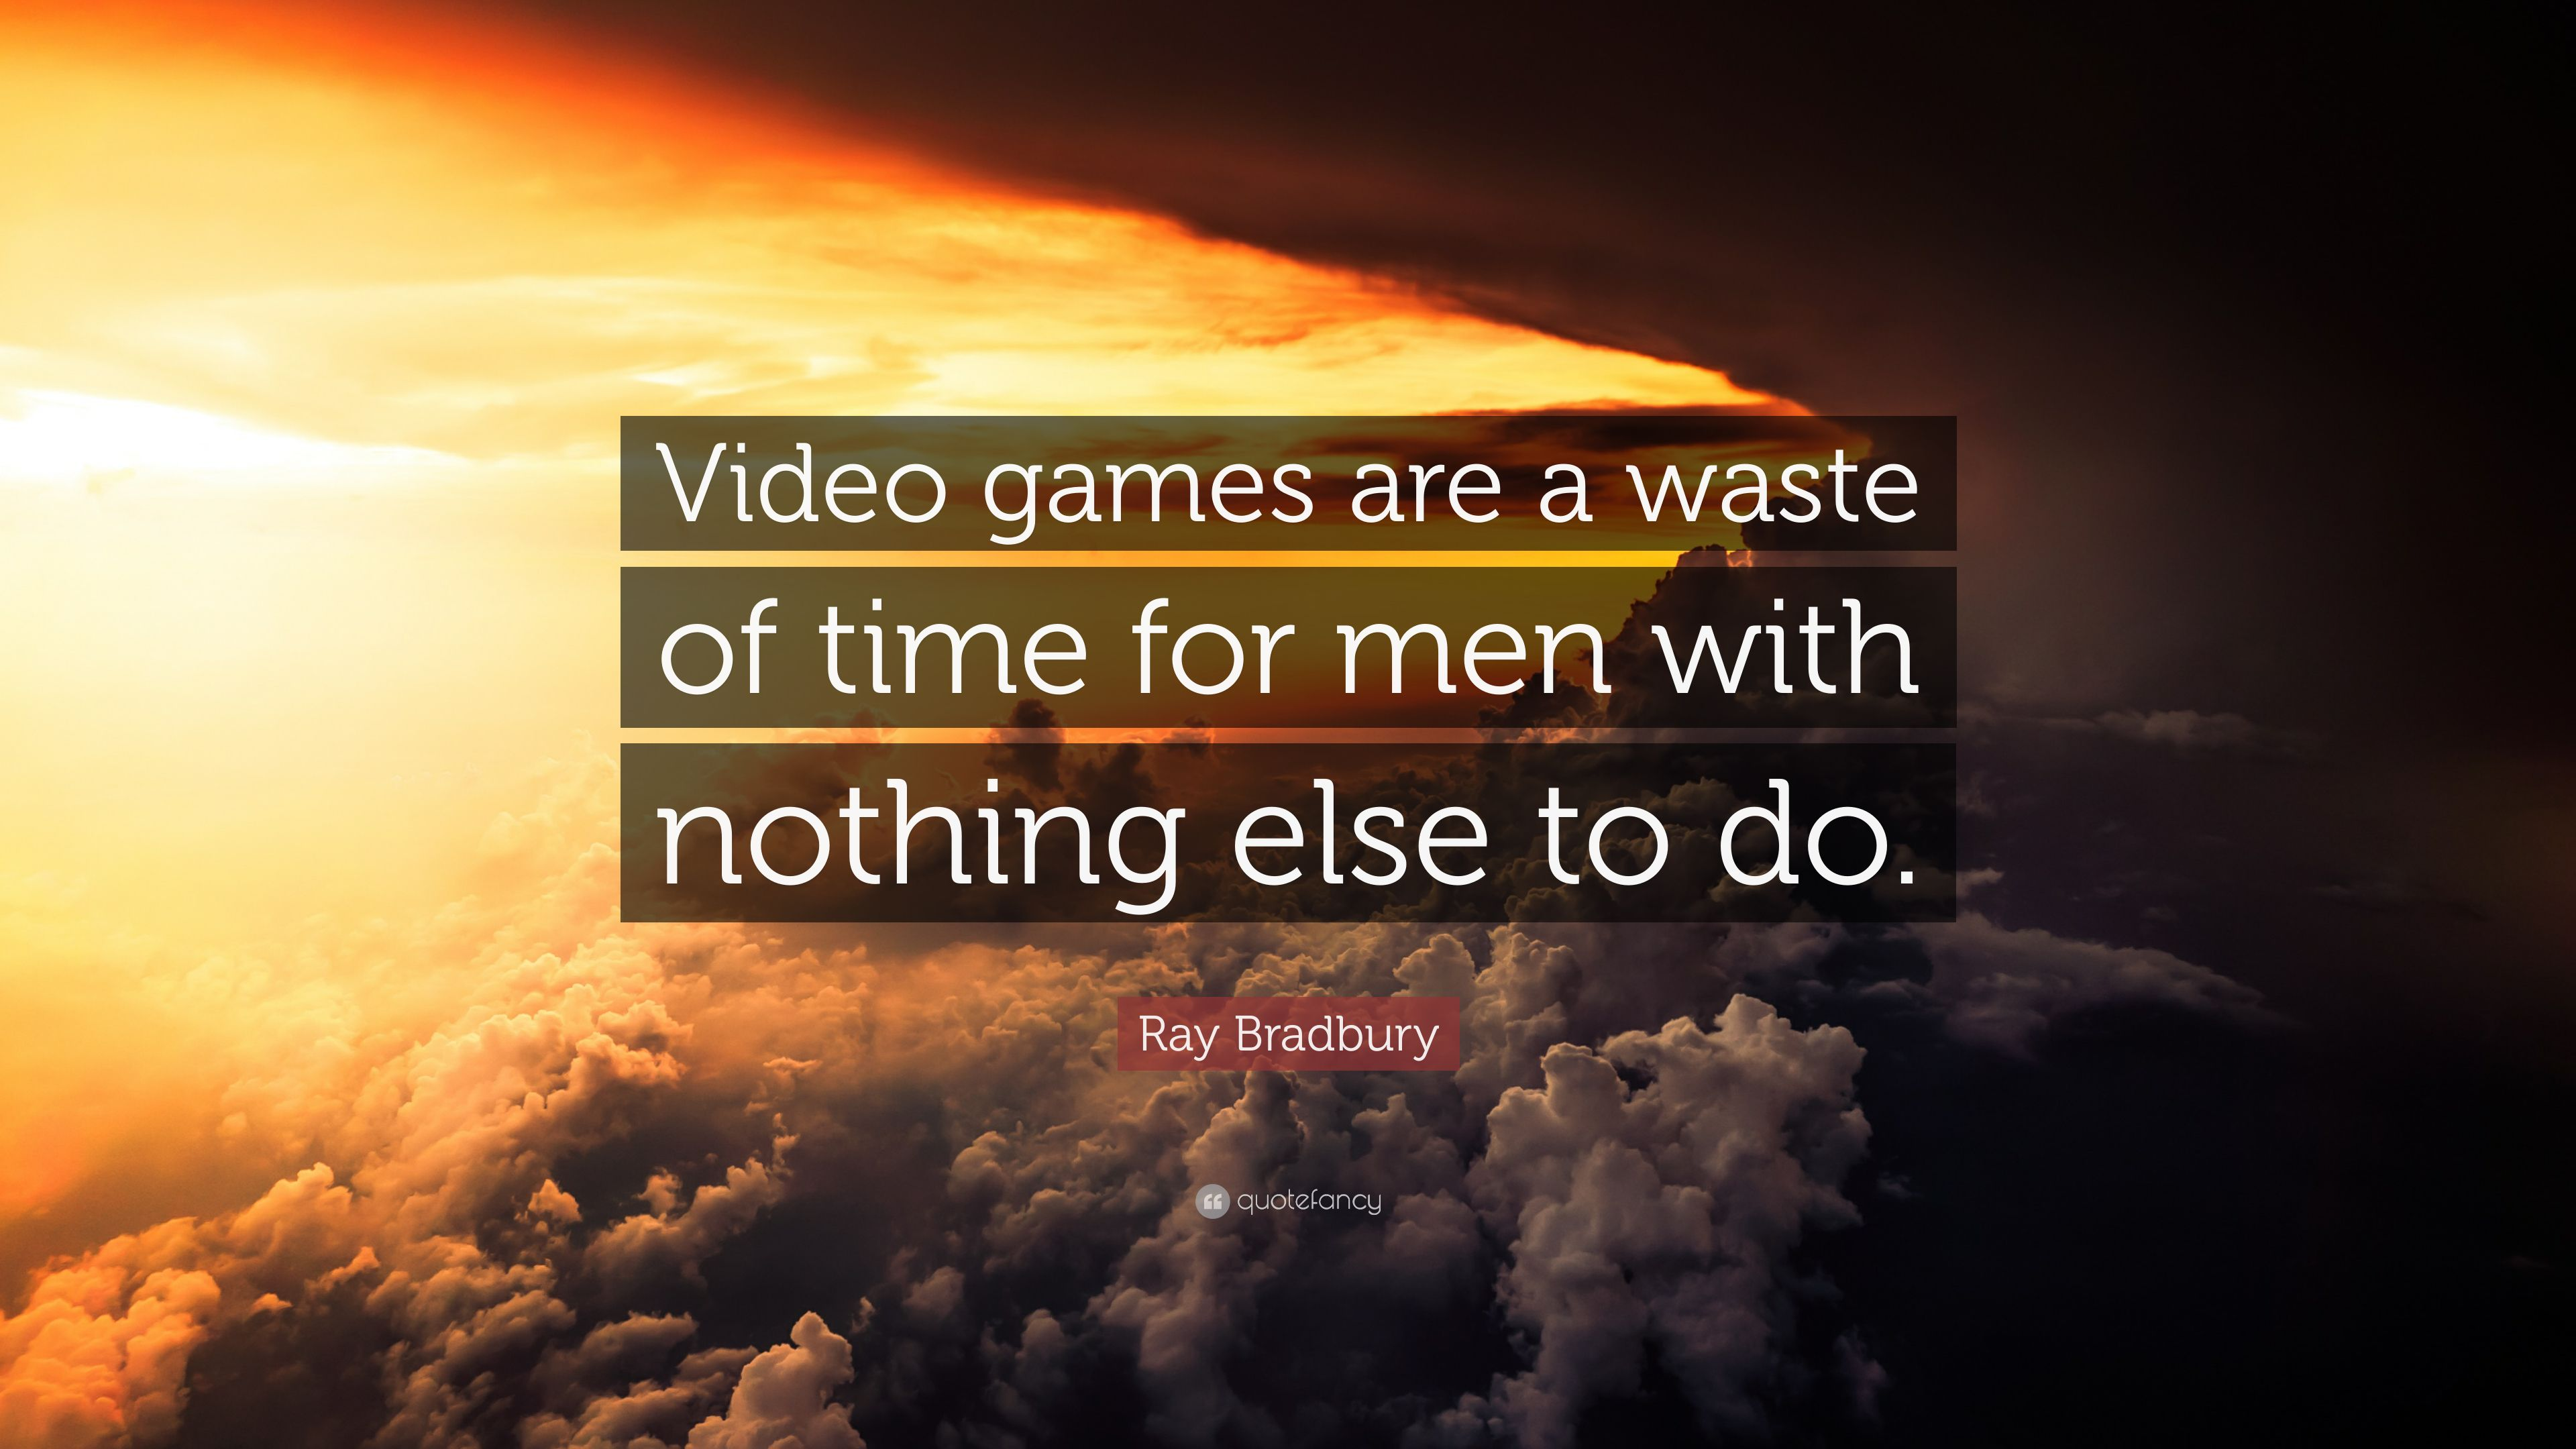 """Ray Bradbury Quote: """"Video games are a waste of time for men with nothing else to do."""" (9 wallpapers) - Quotefancy"""